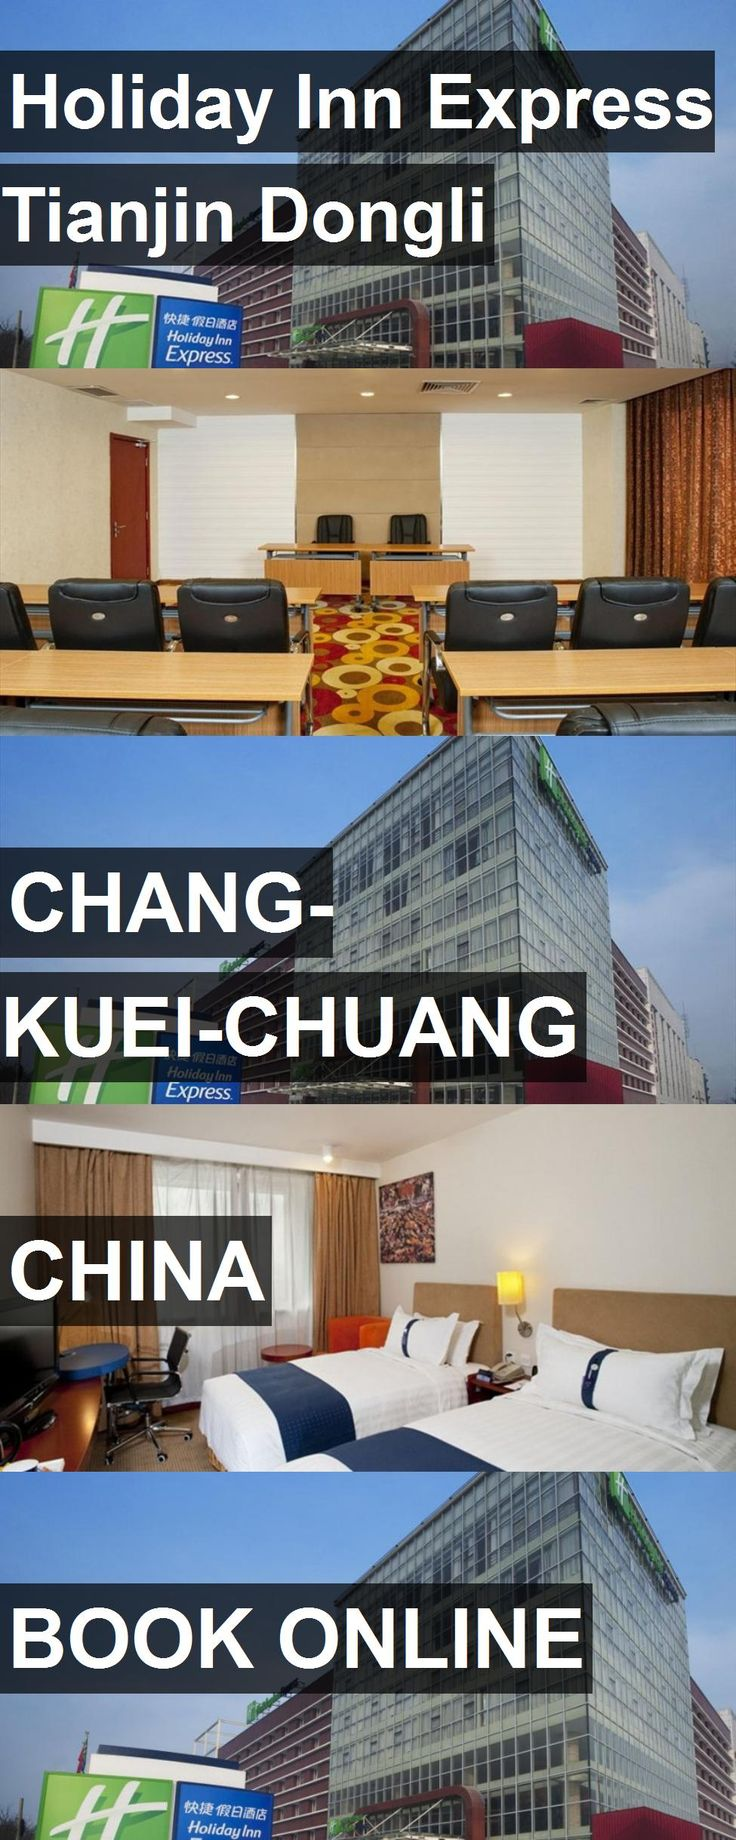 Hotel Holiday Inn Express Tianjin Dongli in Chang-kuei-chuang, China. For more information, photos, reviews and best prices please follow the link. #China #Chang-kuei-chuang #travel #vacation #hotel